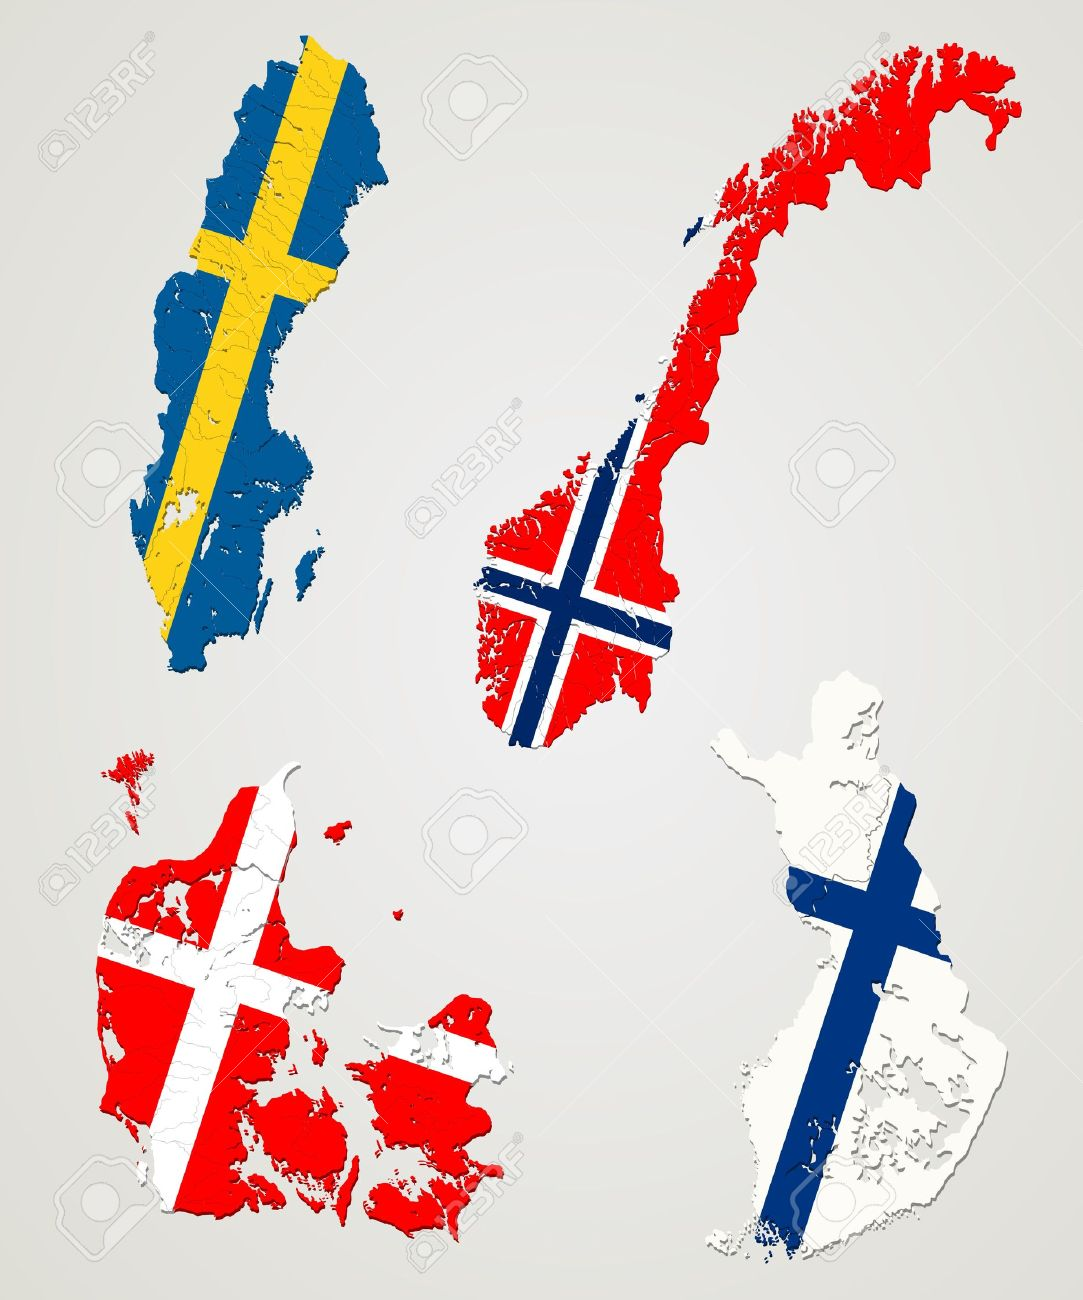 Map And Flags Of Four Major Nordic Countries Norway Sweden - Norway map vector countries